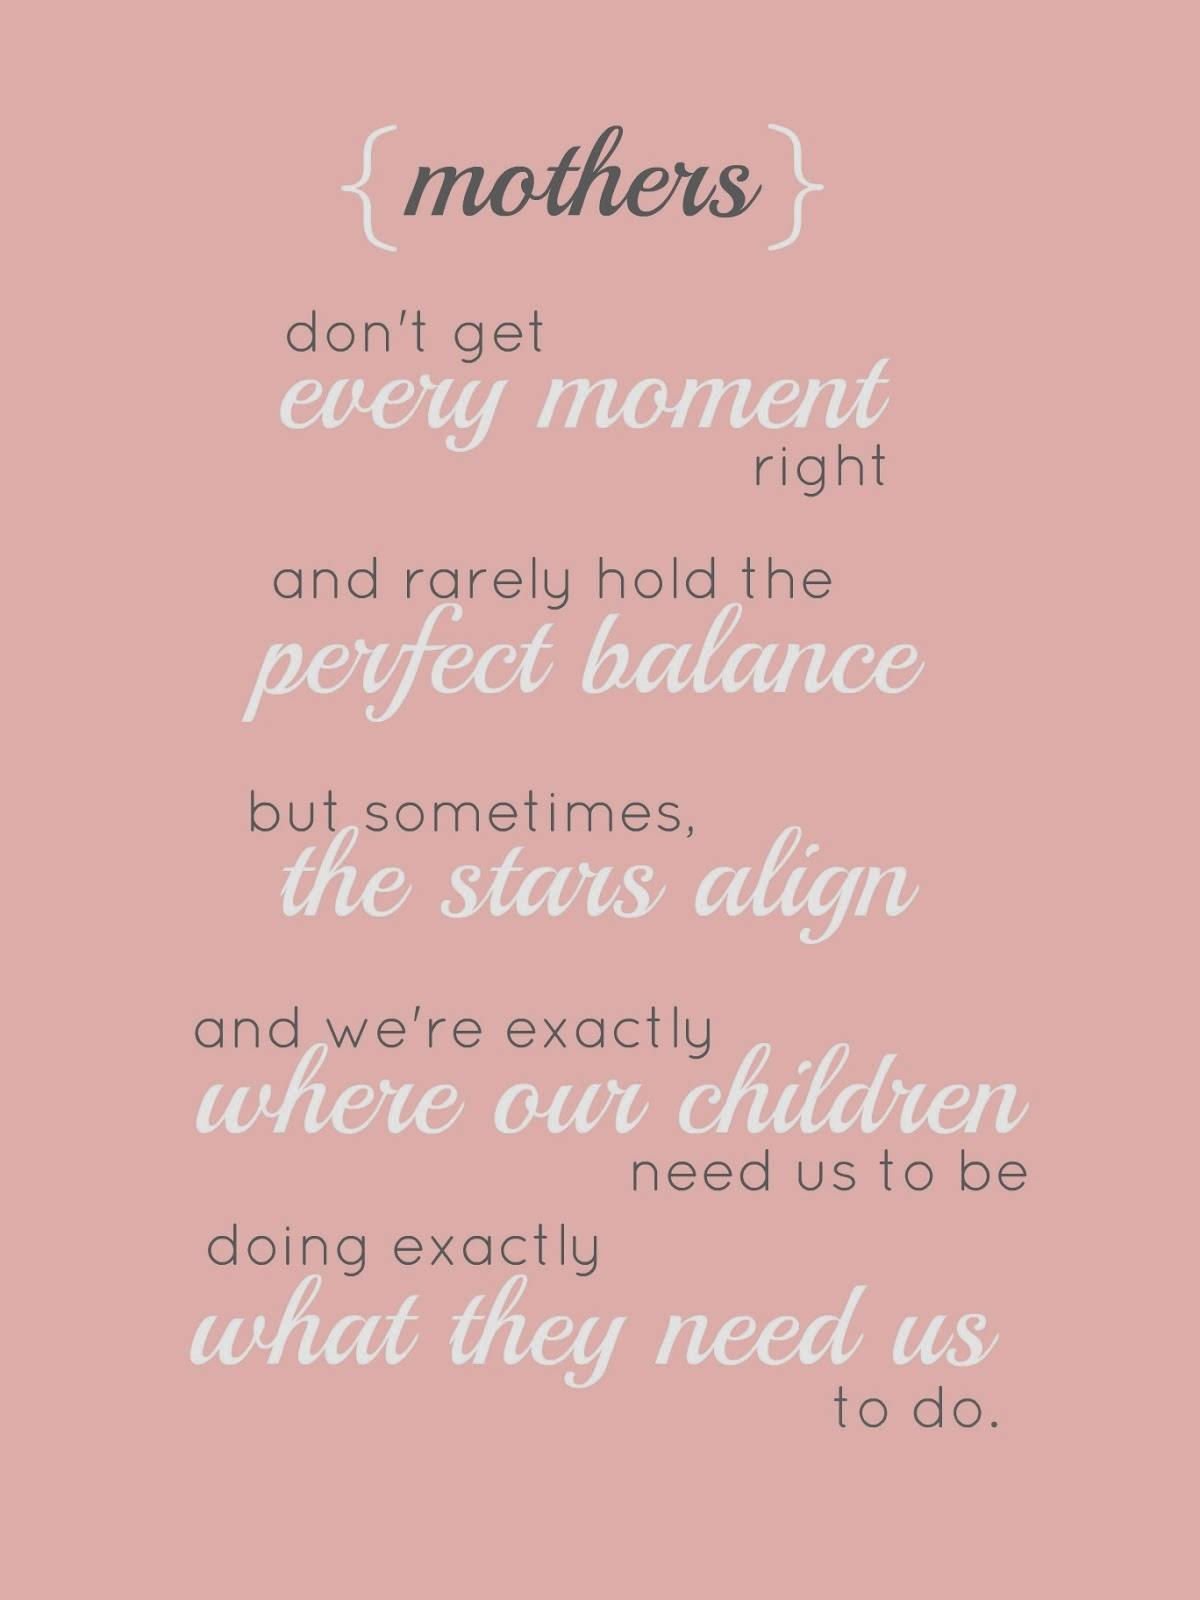 Happy Mothers Day Quotes From Daughter 2014 | Global ...